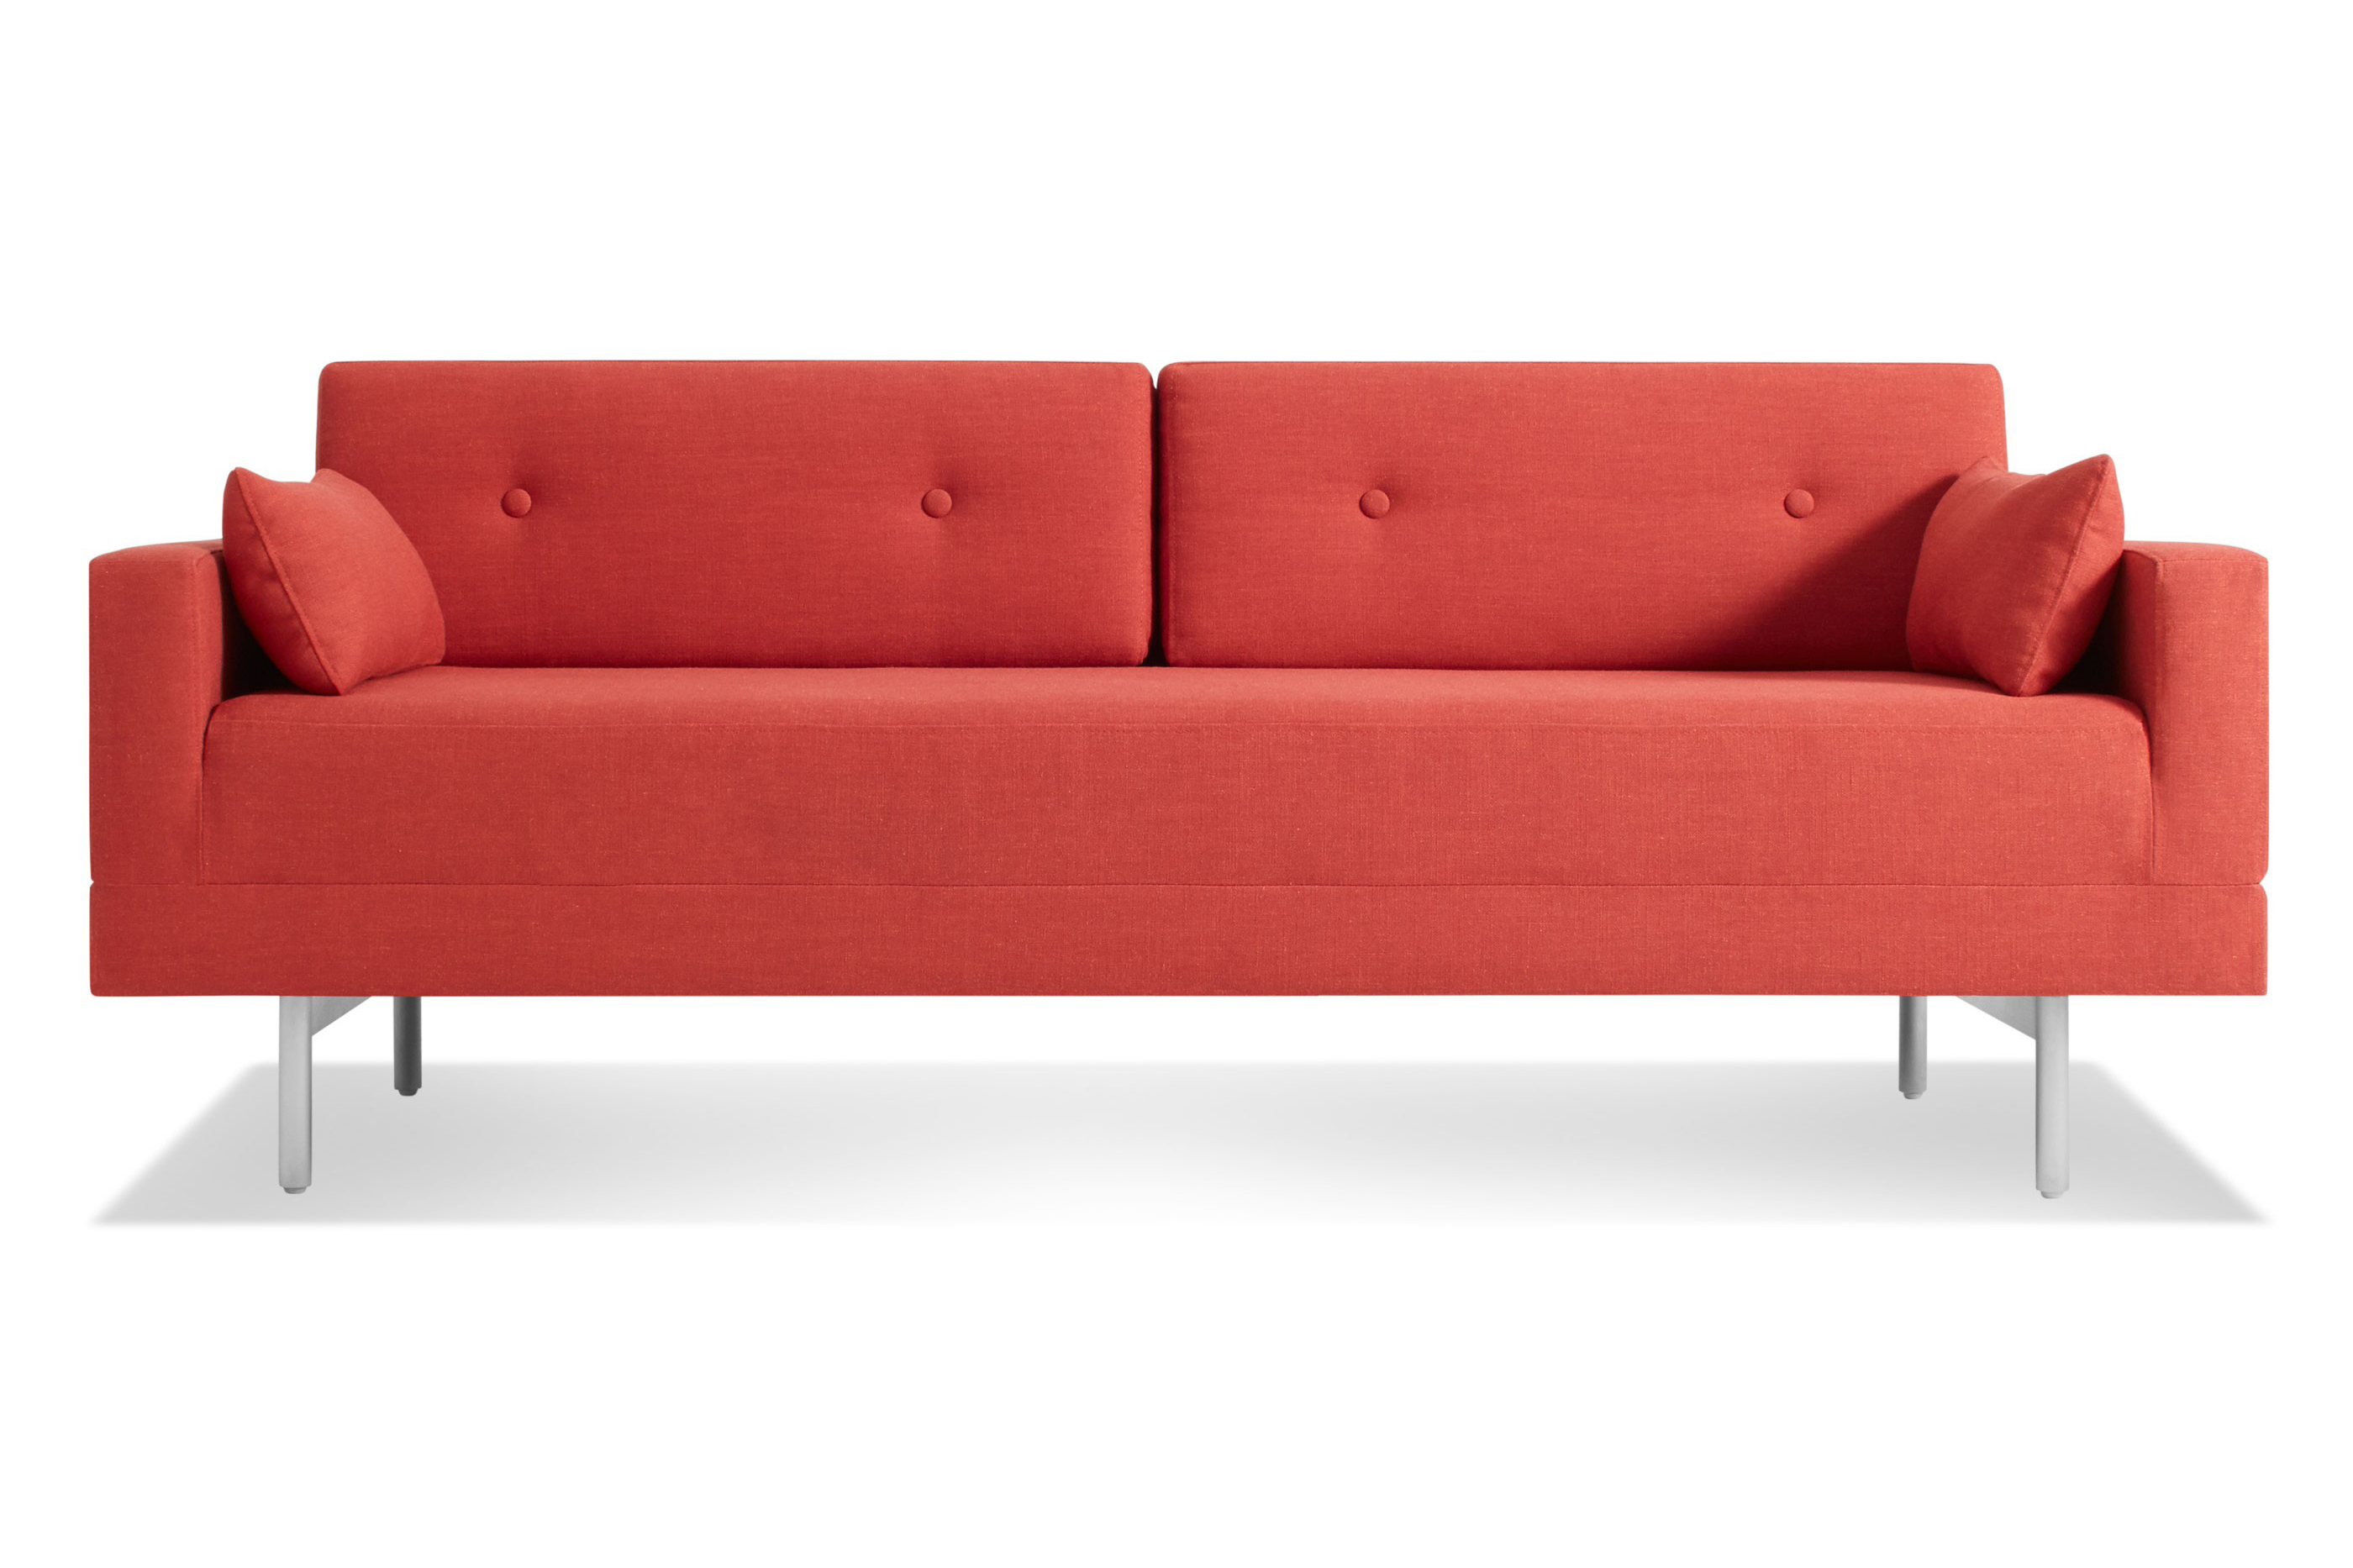 Groovy Reviewed The Most Comfortable Sofas At Blu Dot Apartment Caraccident5 Cool Chair Designs And Ideas Caraccident5Info